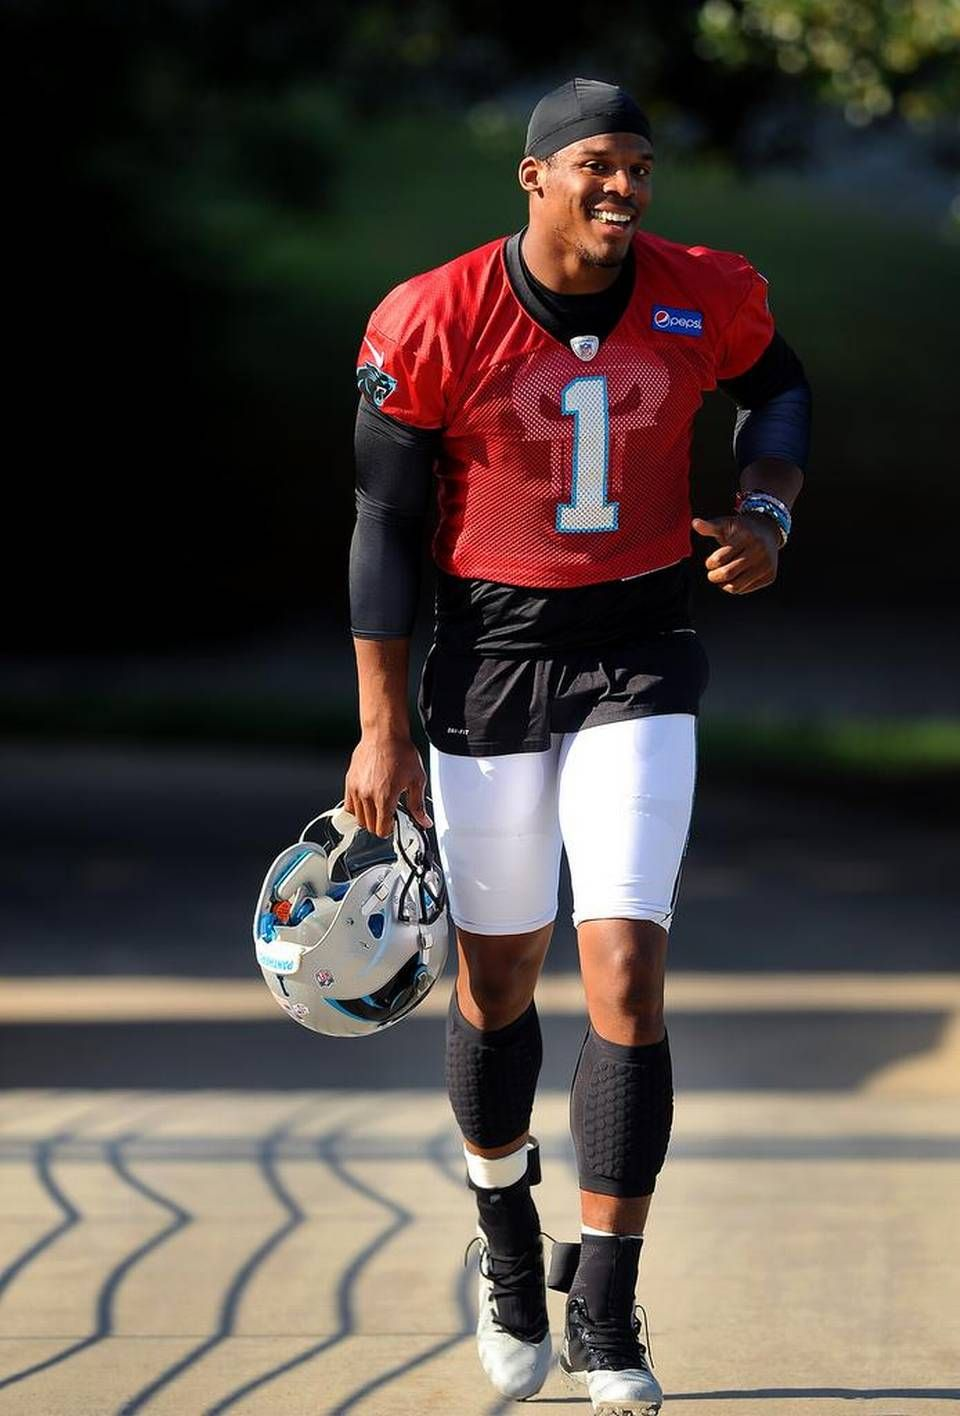 Carolina Panthers quarterback Cam Newton smiles as he jogs to practice on Tuesday, September 1, 2015.